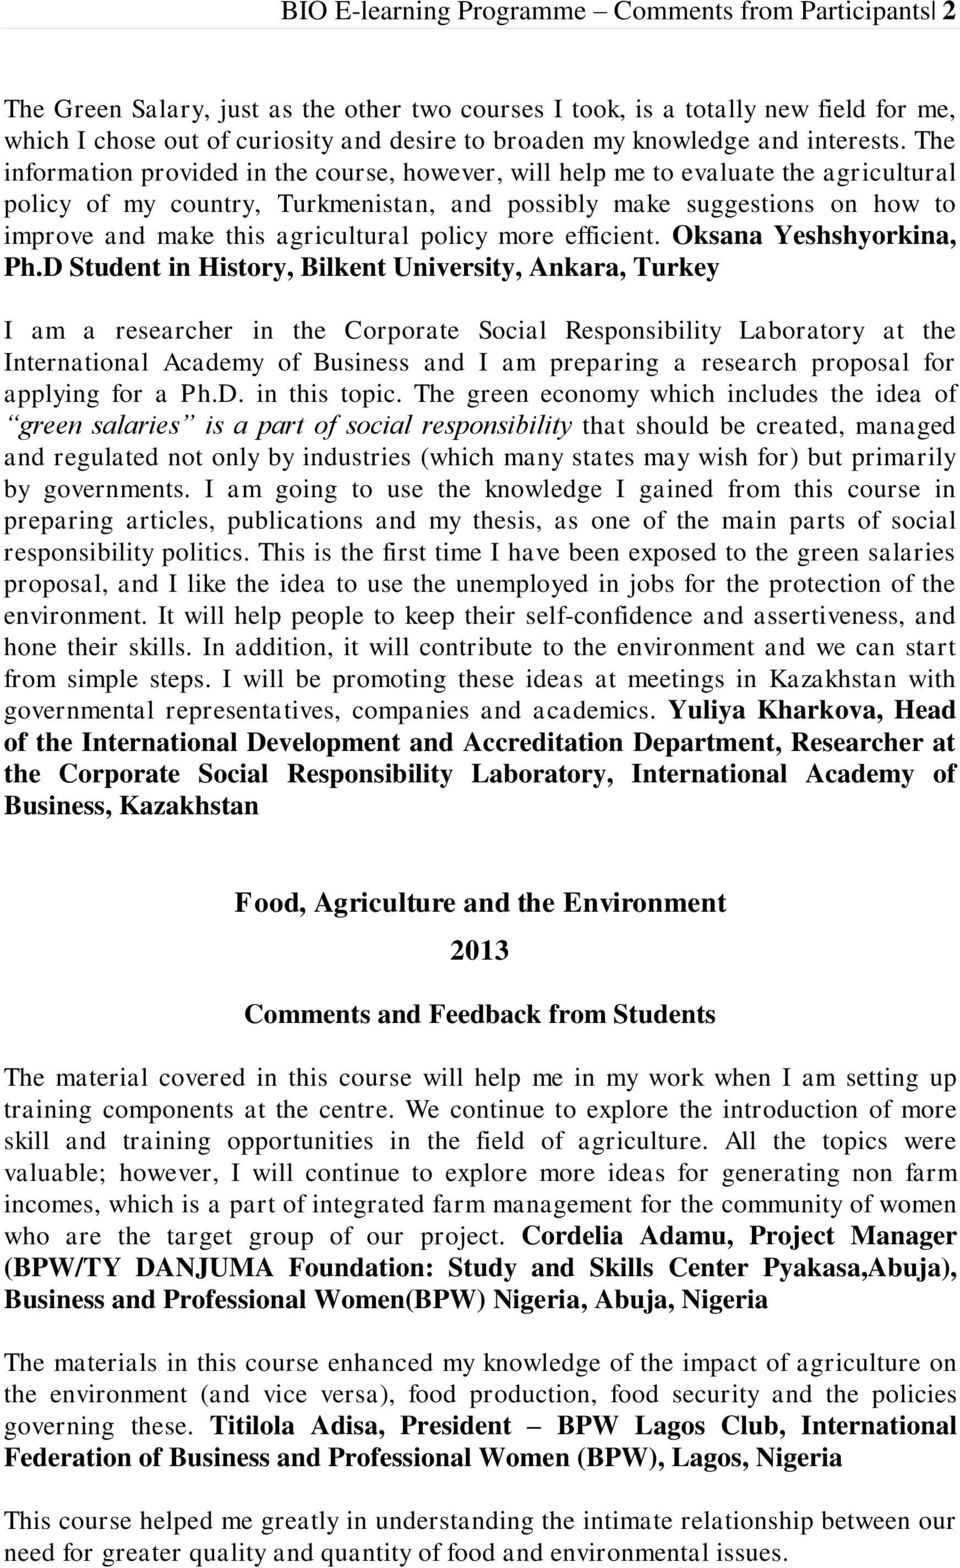 The information provided in the course, however, will help me to evaluate the agricultural policy of my country, Turkmenistan, and possibly make suggestions on how to improve and make this